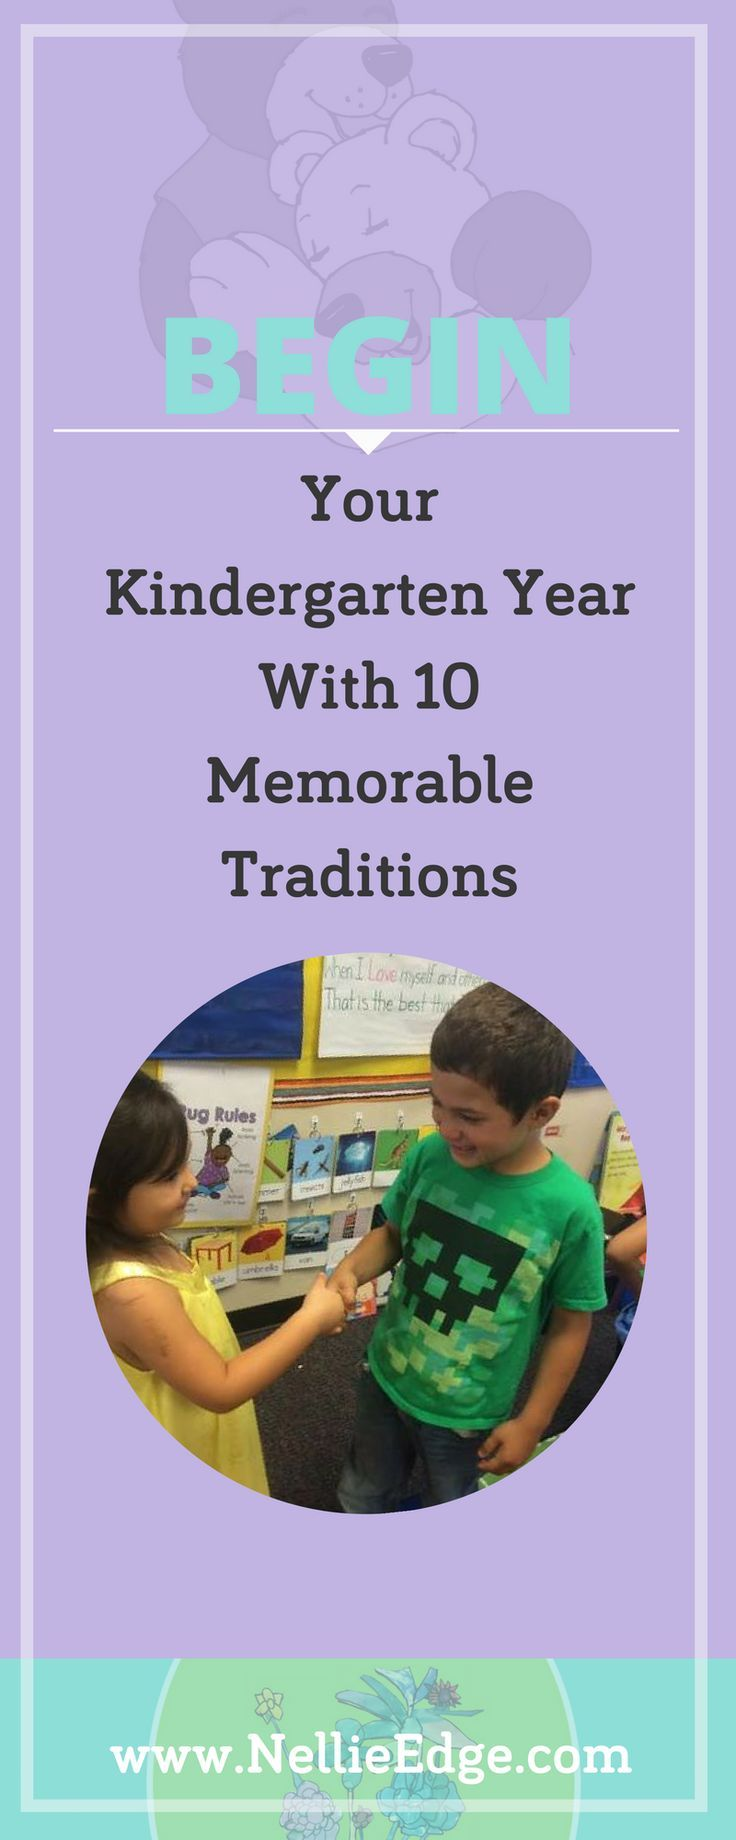 Begin Your Kindergarten Year with 10 Memorable Traditions: How can you create beginning-of-the-year rituals and traditions that build community and enhance literacy? Learn about ideas for settling-in time, favorite songs, and more. Establishing ELA Common Core standards for kindergarten students' back-to-school learning is enhanced thru positive discipline and the social-emotional climate you create. Learn more at http://nellieedge.com/weekly-focus/begin-year-memorable-rituals/ | New…